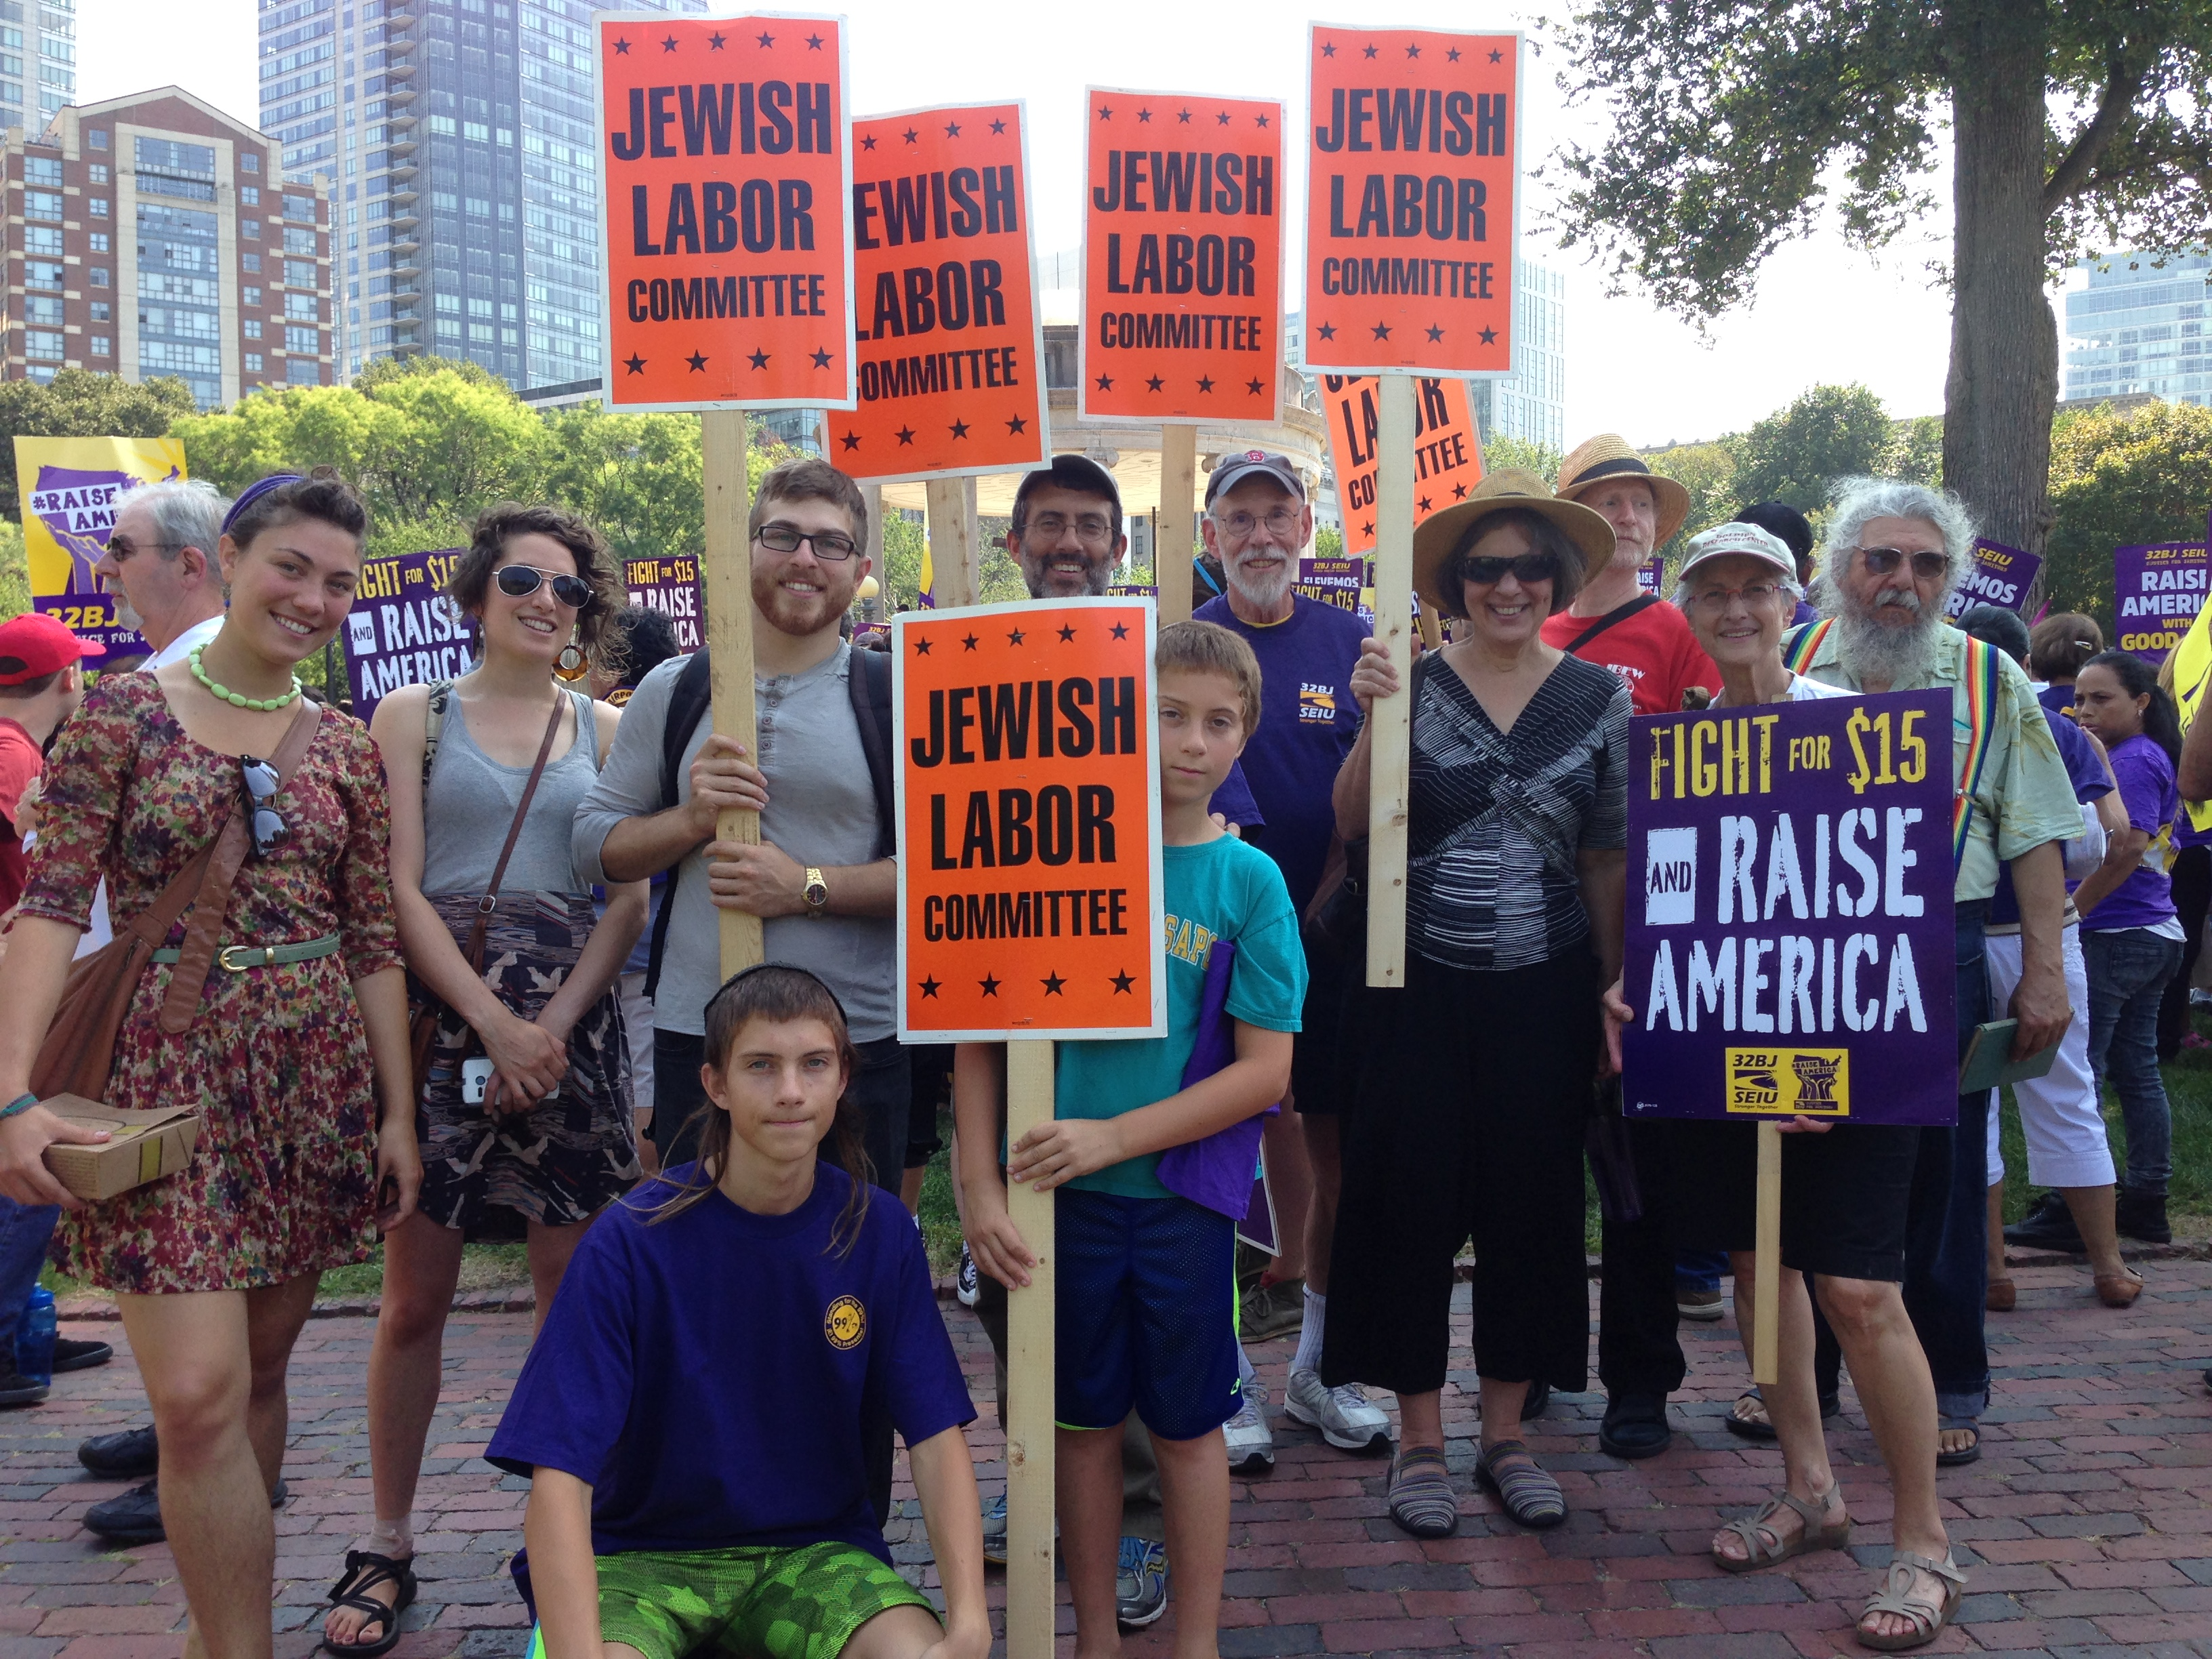 Jewish Labor Committee's Fight for $15 - Labor Day 2015